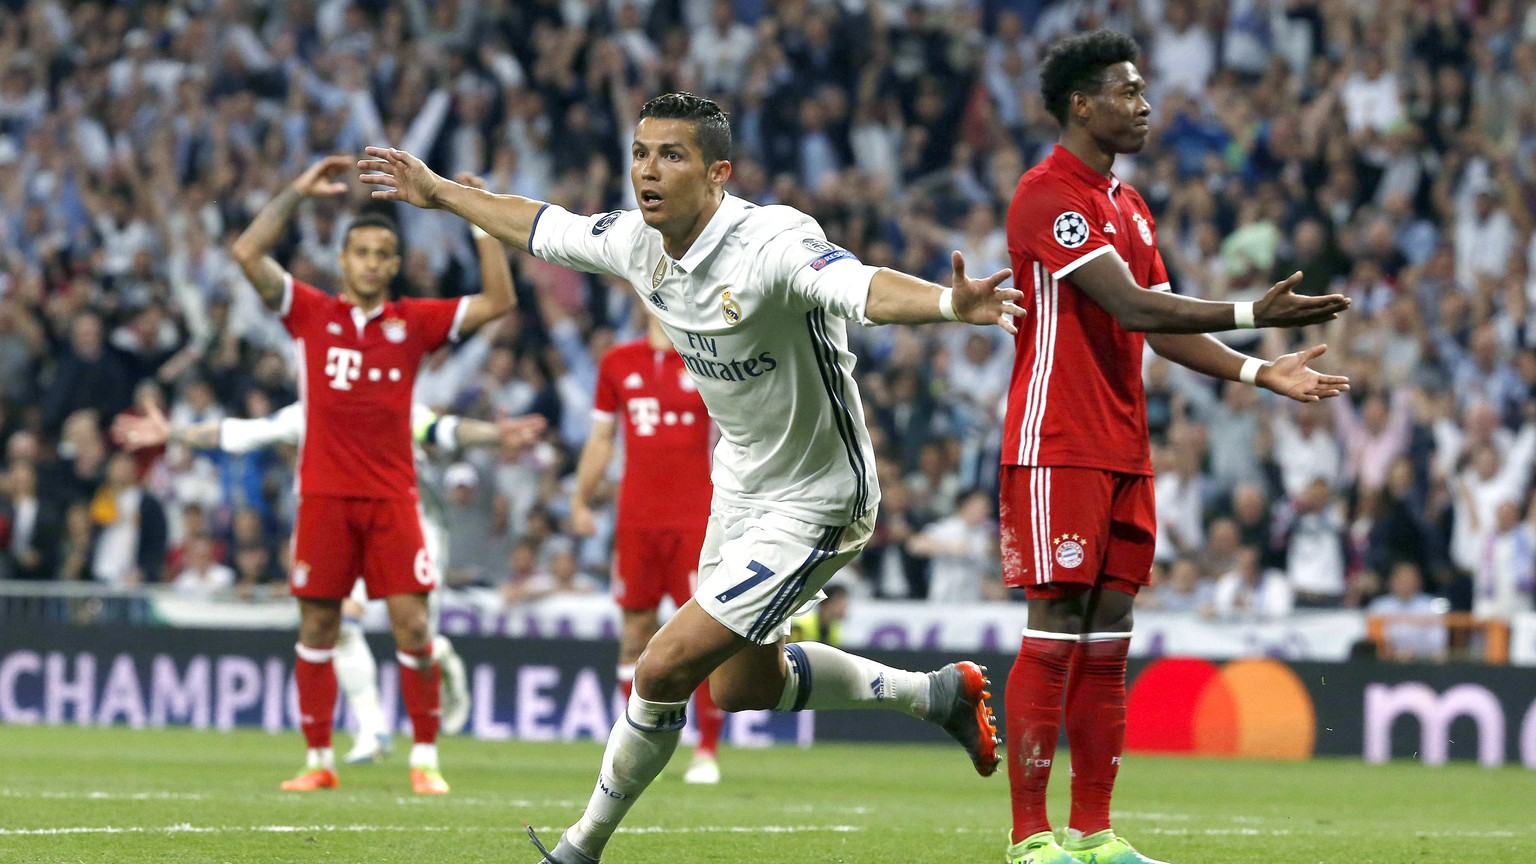 epa05914132 Real Madrid's Portuguese striker Cristiano Ronaldo (C) celebrates his second goal against Bayern Munich during the UEFA Champions League quarter final, second leg soccer match between Real Madrid and Bayern Munich at Santiago Bernabeu stadium in Madrid, Spain, 18 April 2017.  EPA/KIKO HUESCA